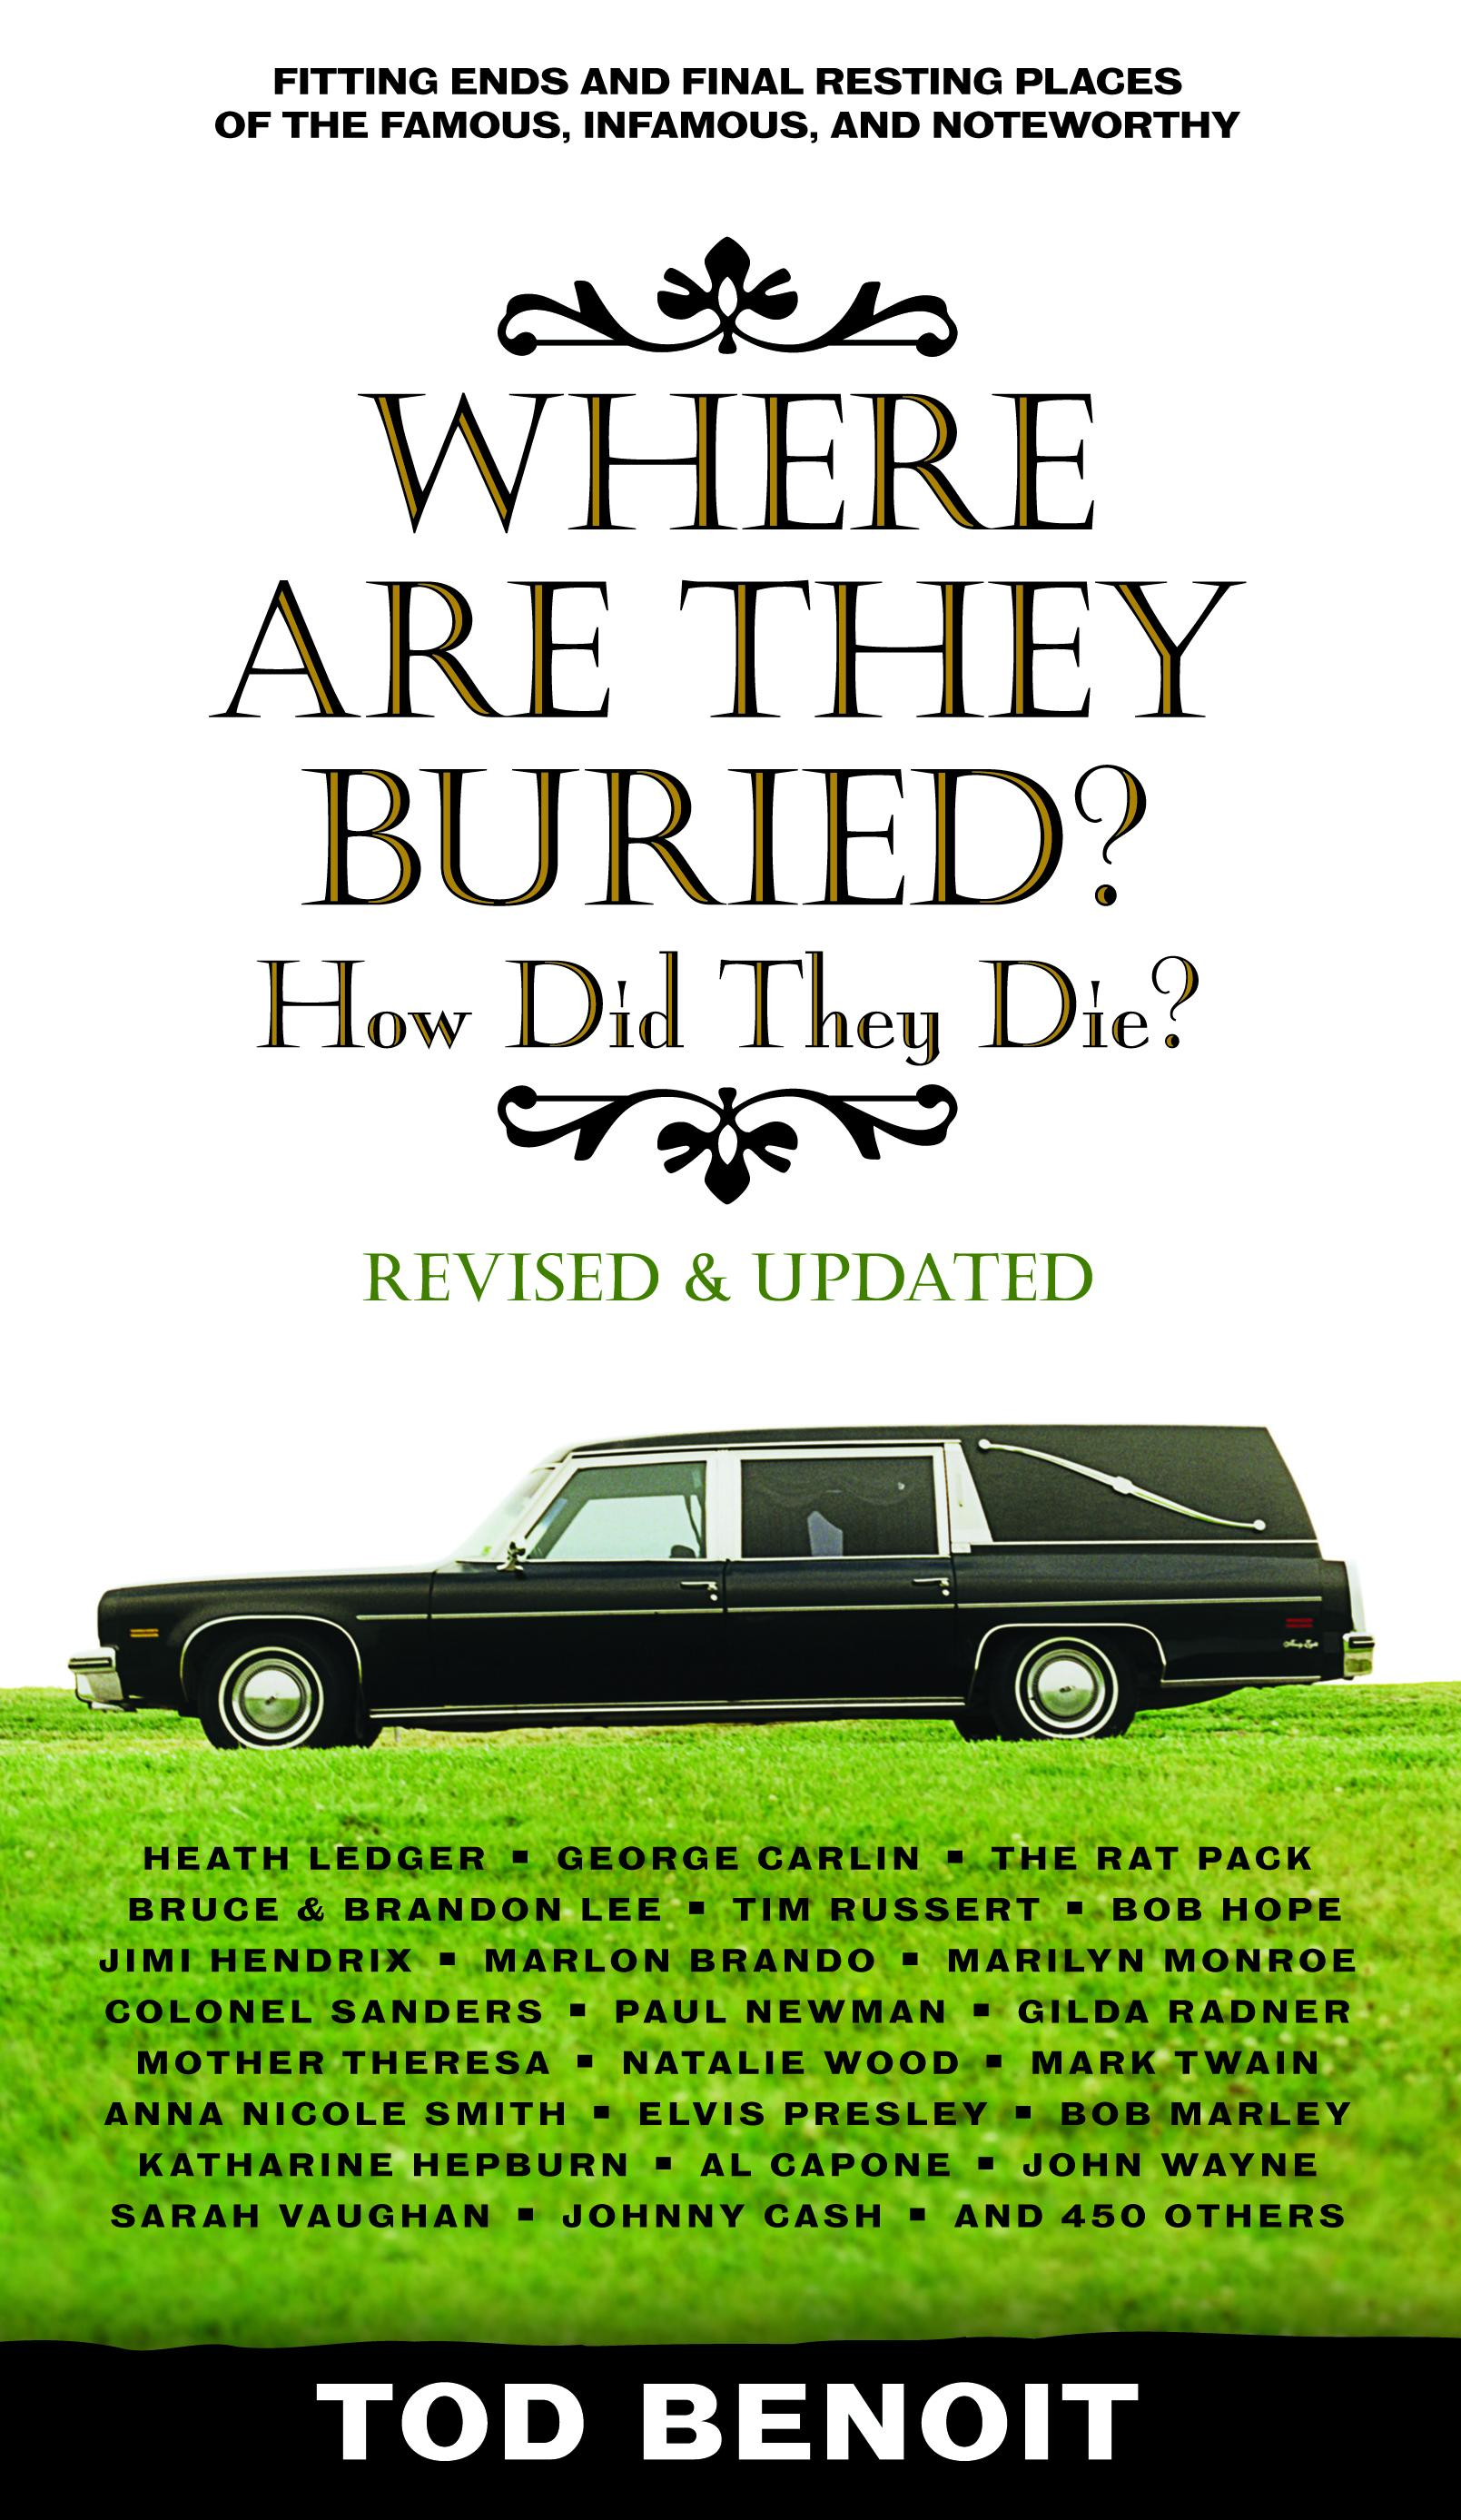 Where Are They Buried (Revised and Updated): How Did They Die? Fitting Ends and Final Resting Places of the Famous, Infamous, and Noteworthy EB9781603761741